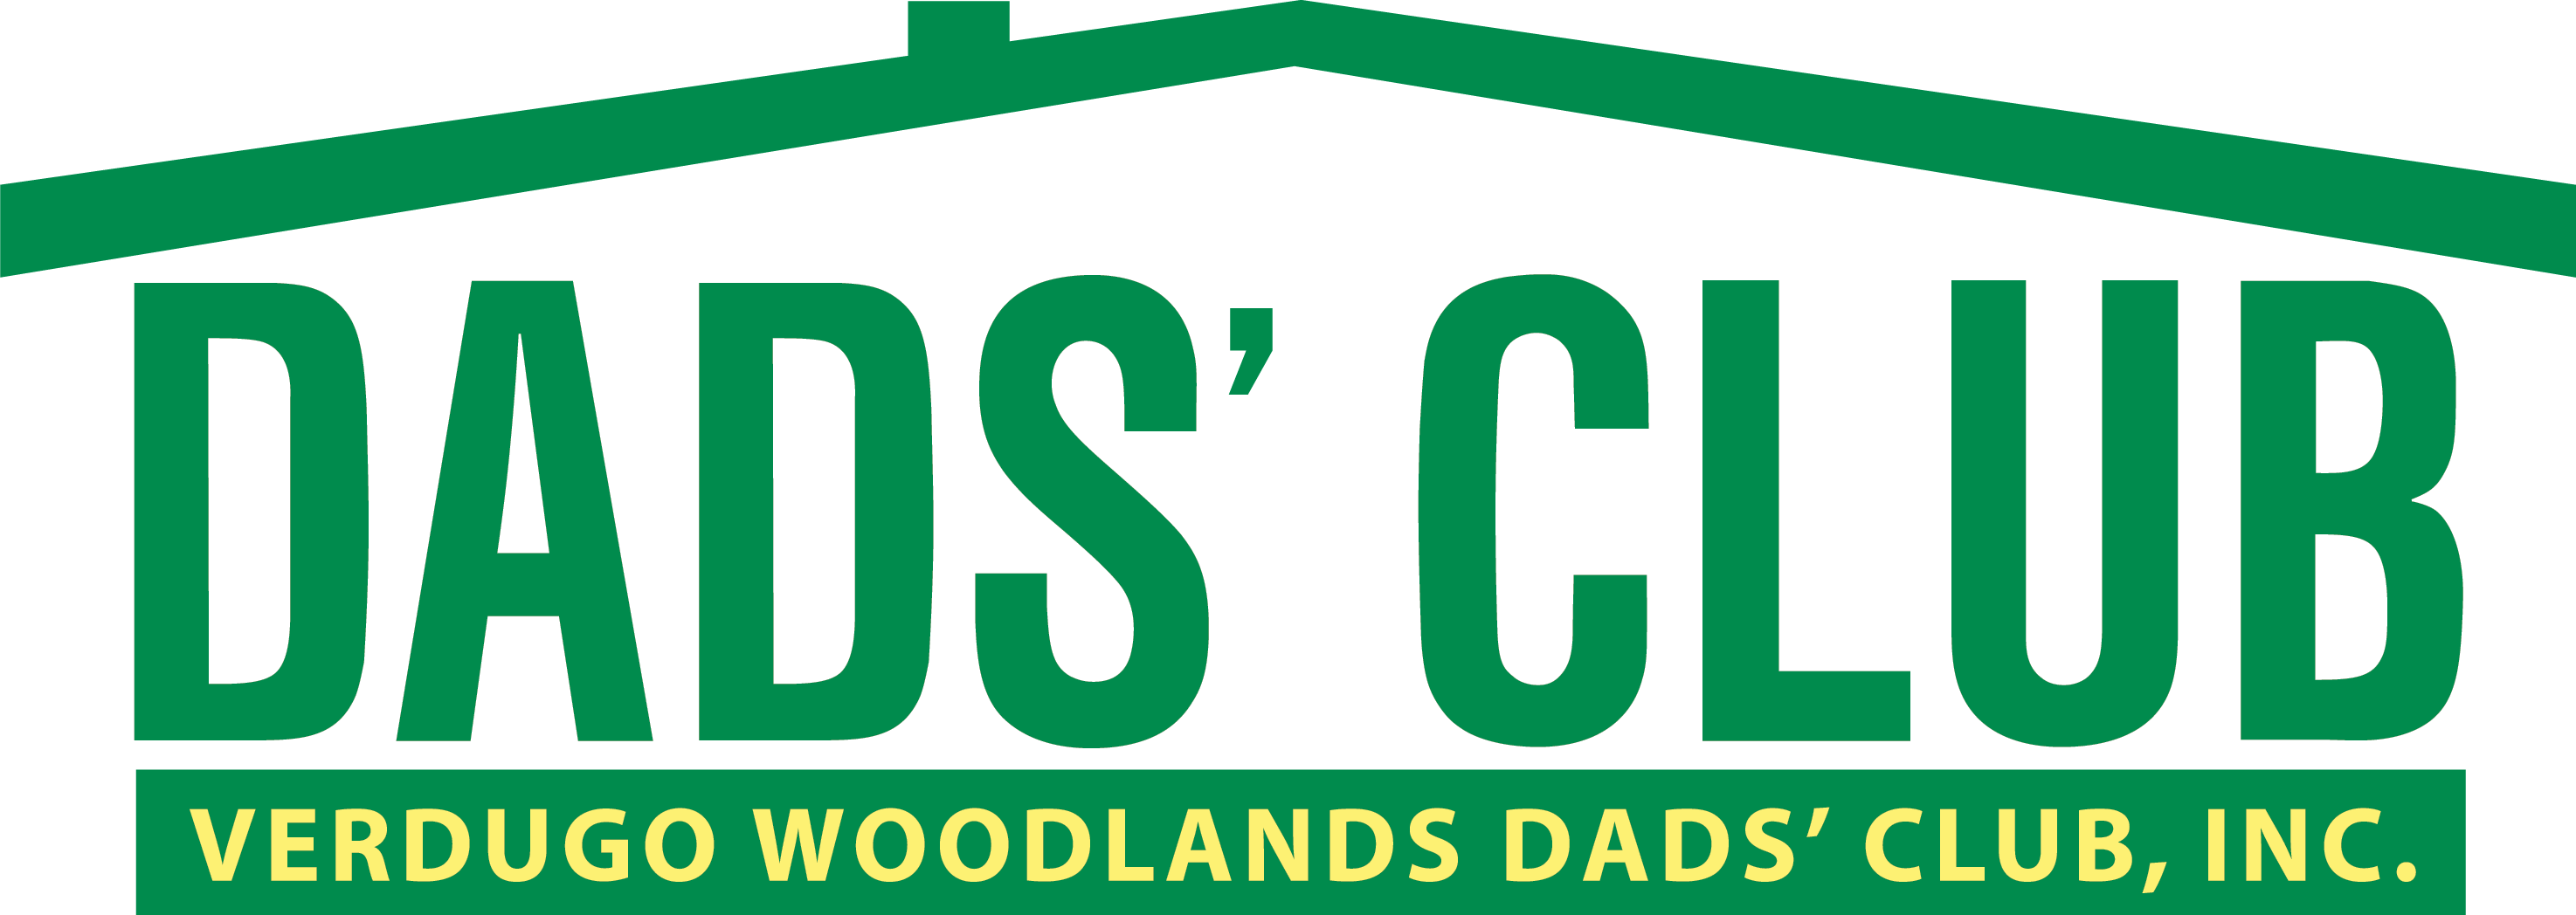 Verdugo Woodlands Dads Club